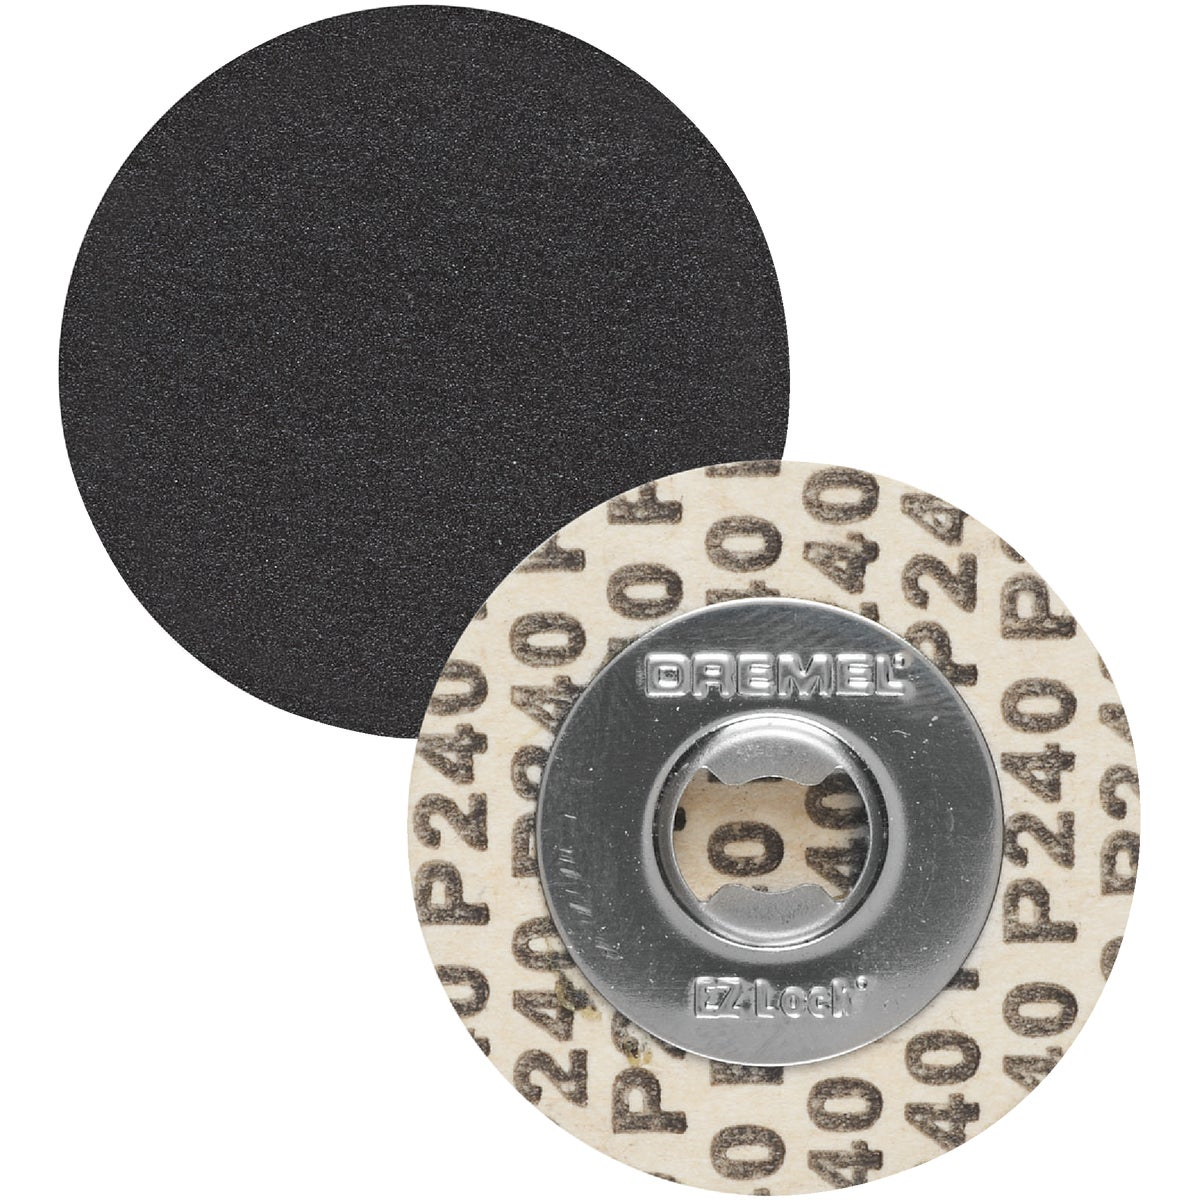 240 GRIT EZ LOCK DISC - EZ413SA by Dremel Mfg Co